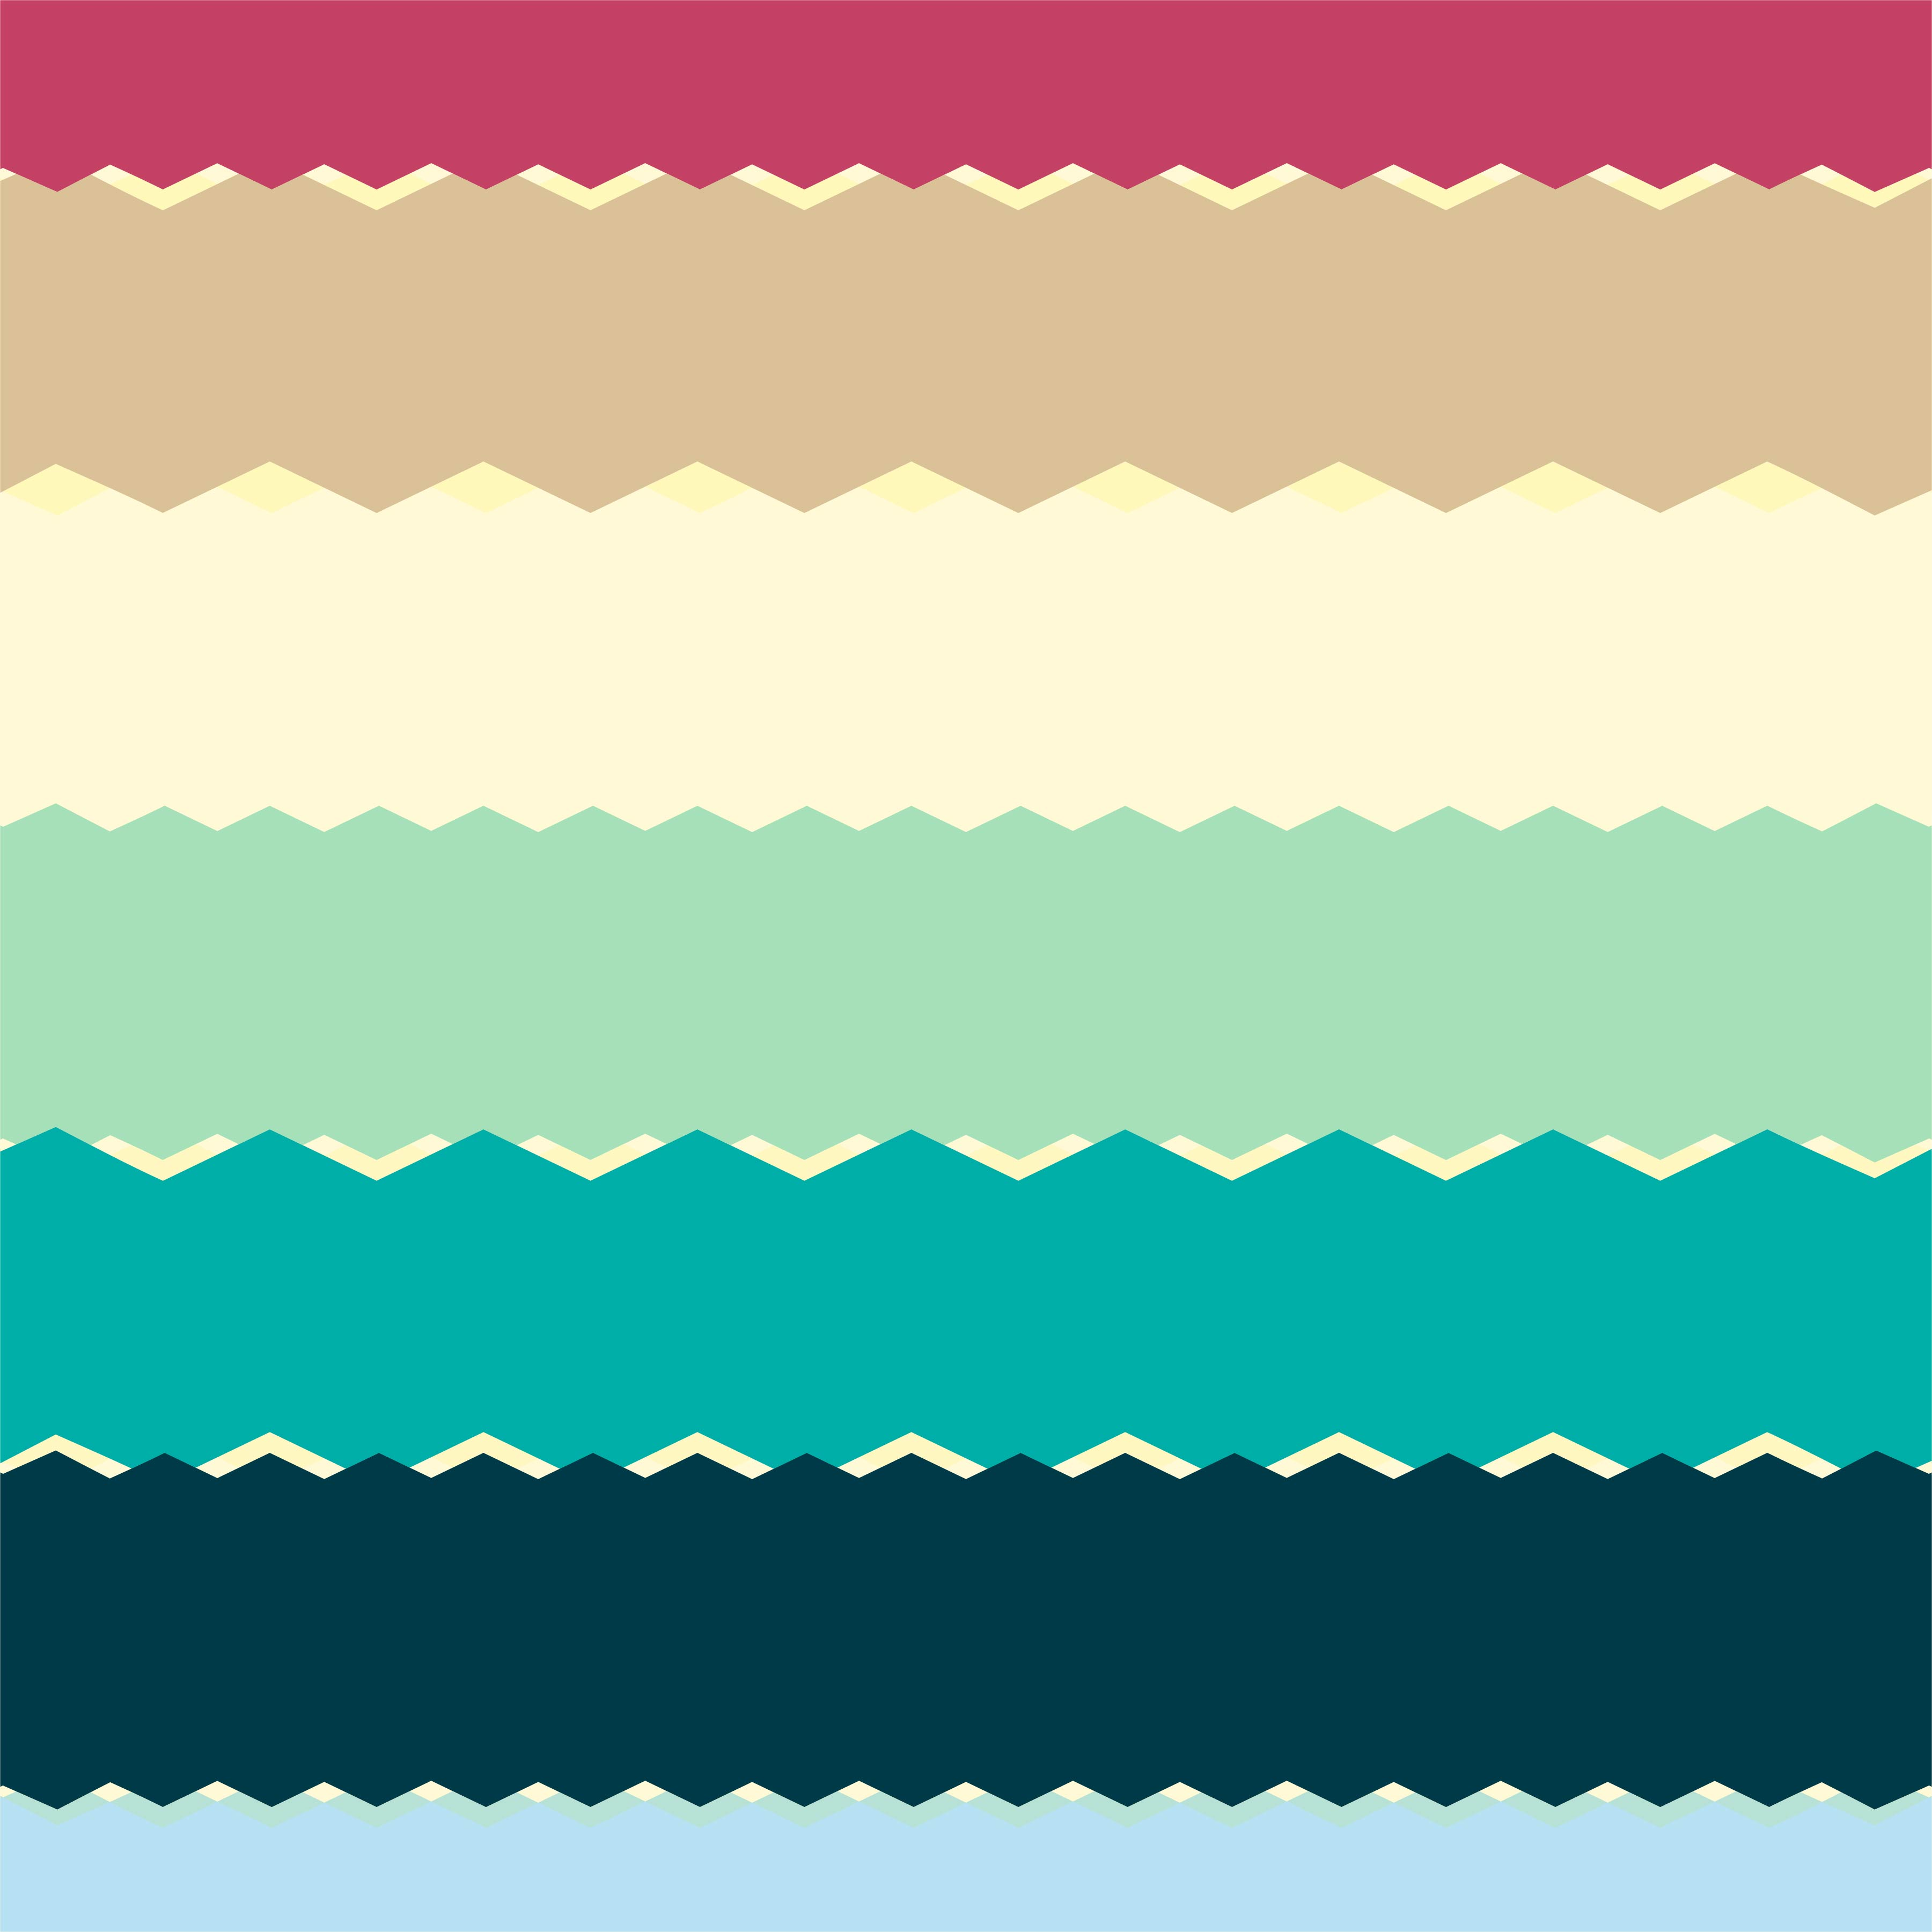 Ice Cream Background Sparking Shiny Decoration Free Vector: Abstract Elegant Colorful Pattern Background